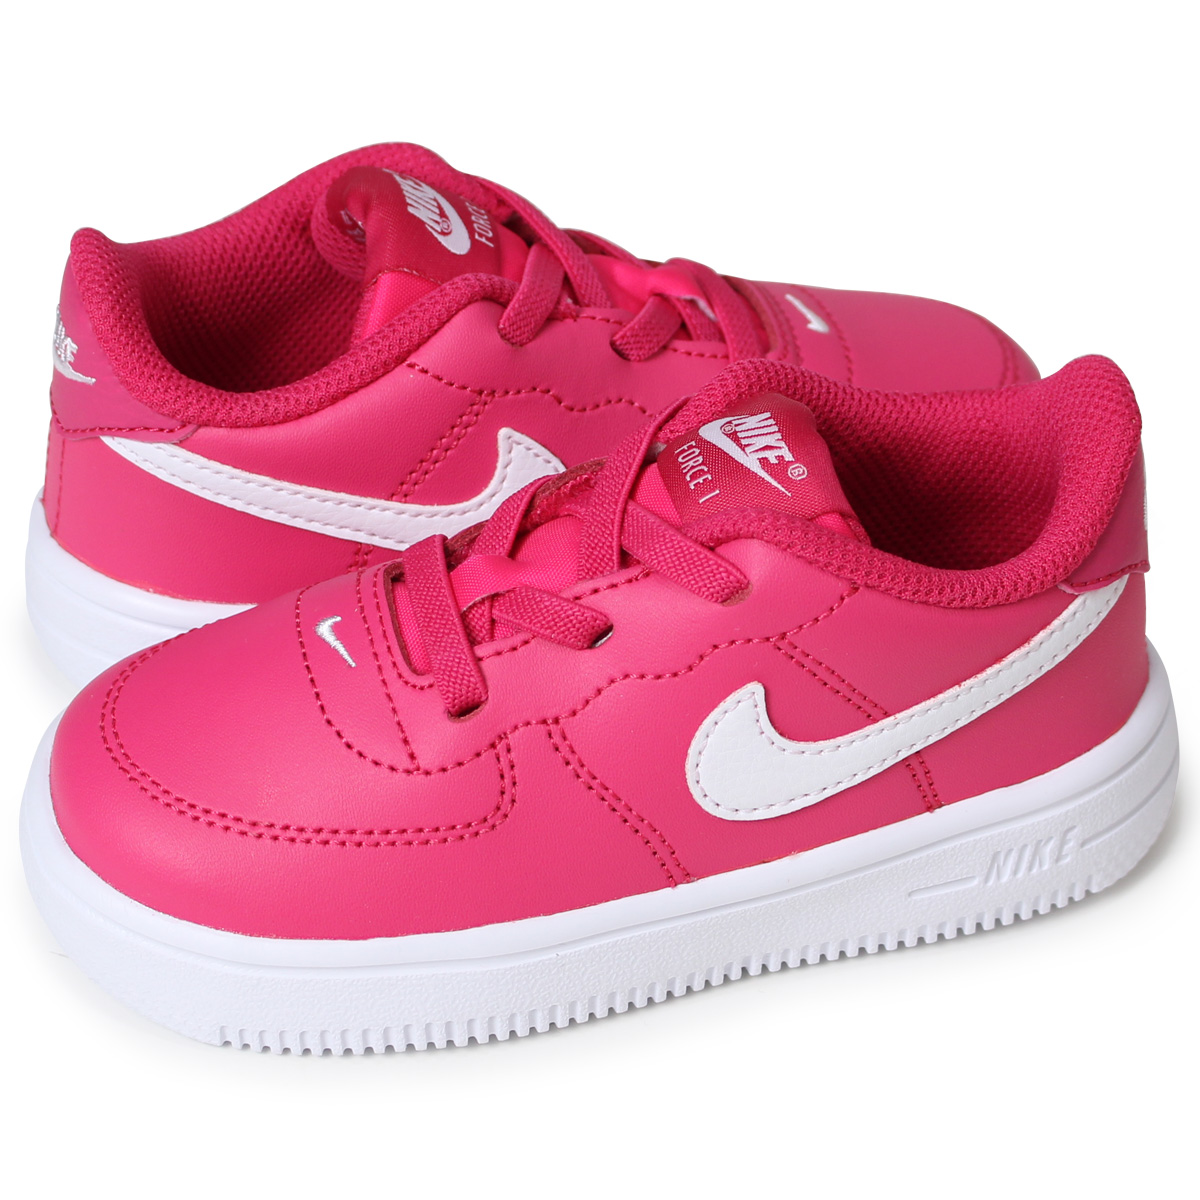 official photos f7875 a0492 NIKE FORCE 1 TD Nike force 1 baby sneakers 905,220-602 pink load planned  Shinnyu load in reservation product 51 containing